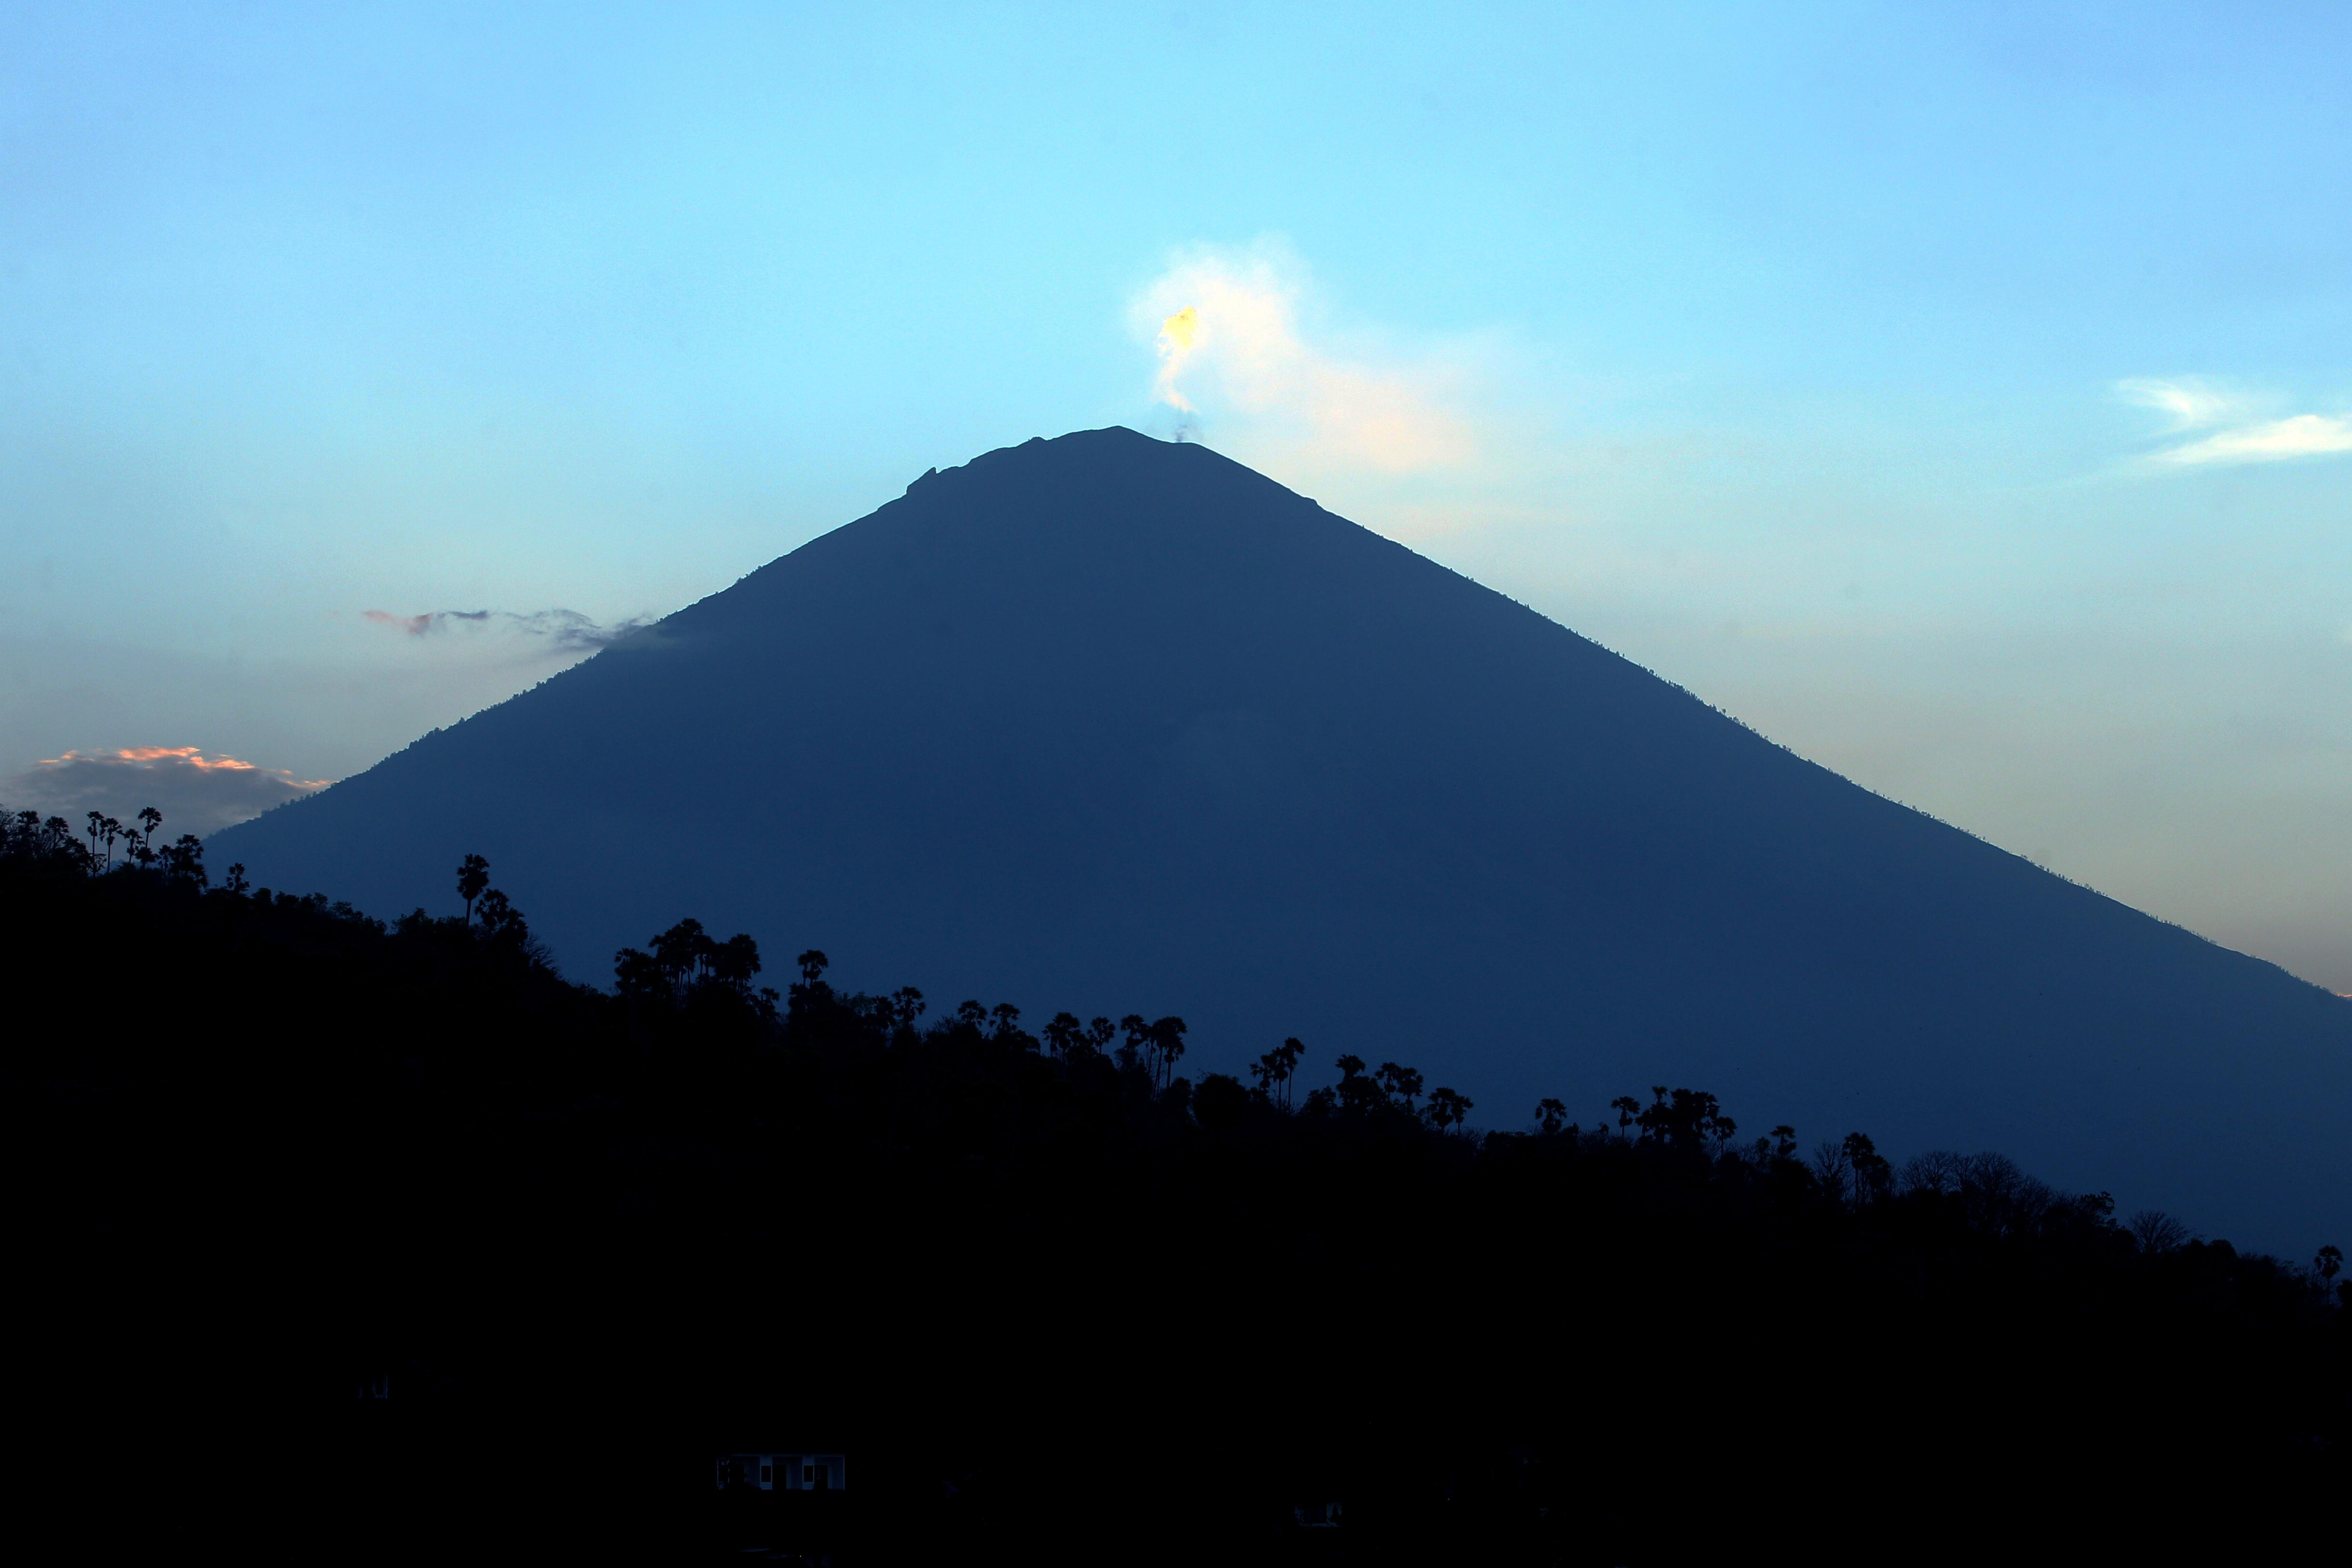 Mount Agung volcano is seen at sunset in Karangasem, Bali, Indonesia, Thursday, Sept. 28, 2017. More than 120,000 people have fled the region around the Mount Agung volcano on the Indonesian tourist island of Bali, fearing it will soon erupt, an official said Thursday. (AP Photo/Firdia Lisnawati)